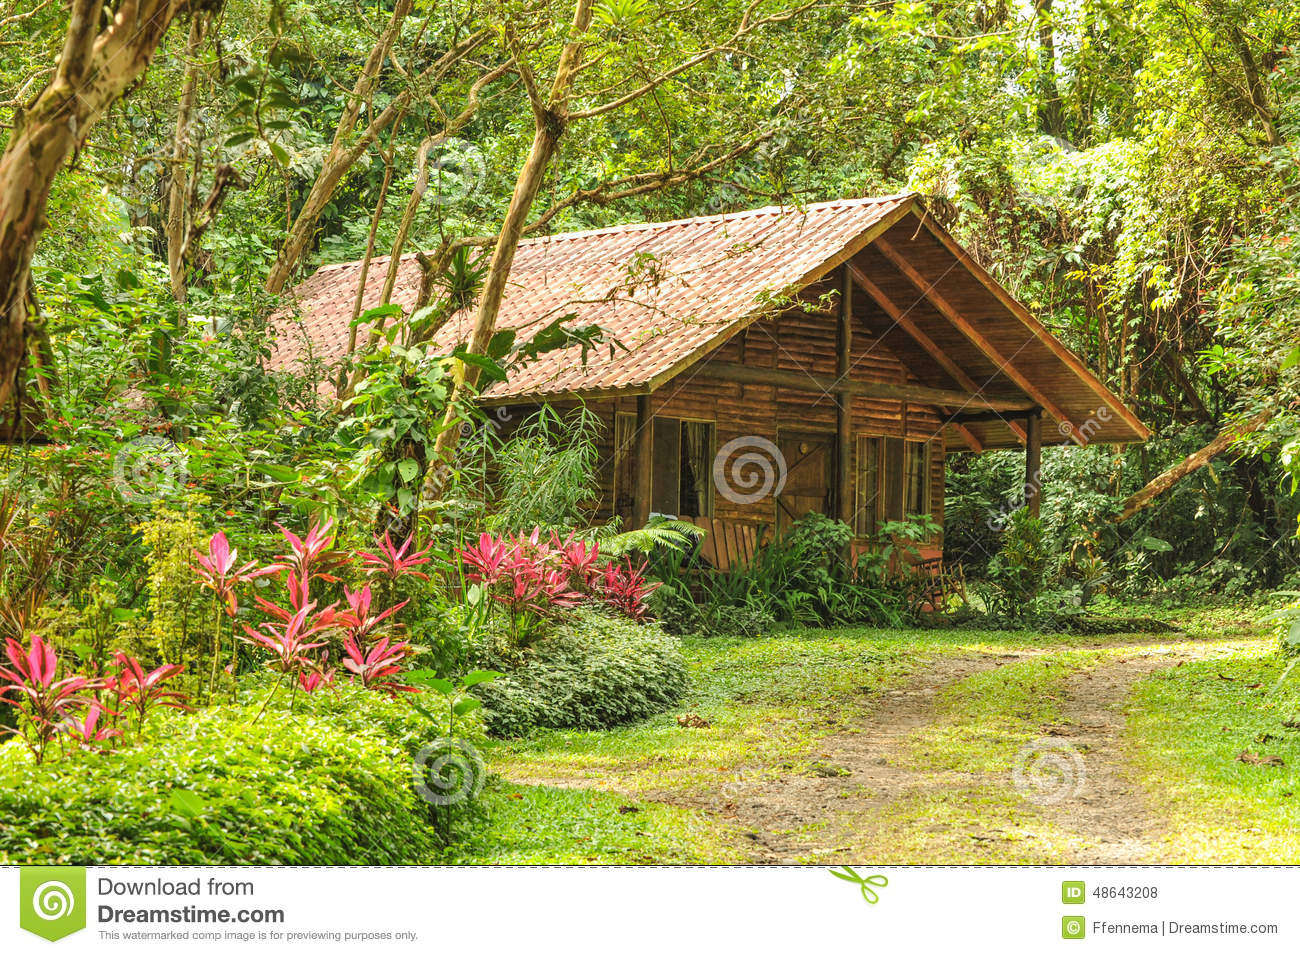 cabane en rondins en bois dans une for t tropicale tropicale photo stock image du home faune. Black Bedroom Furniture Sets. Home Design Ideas